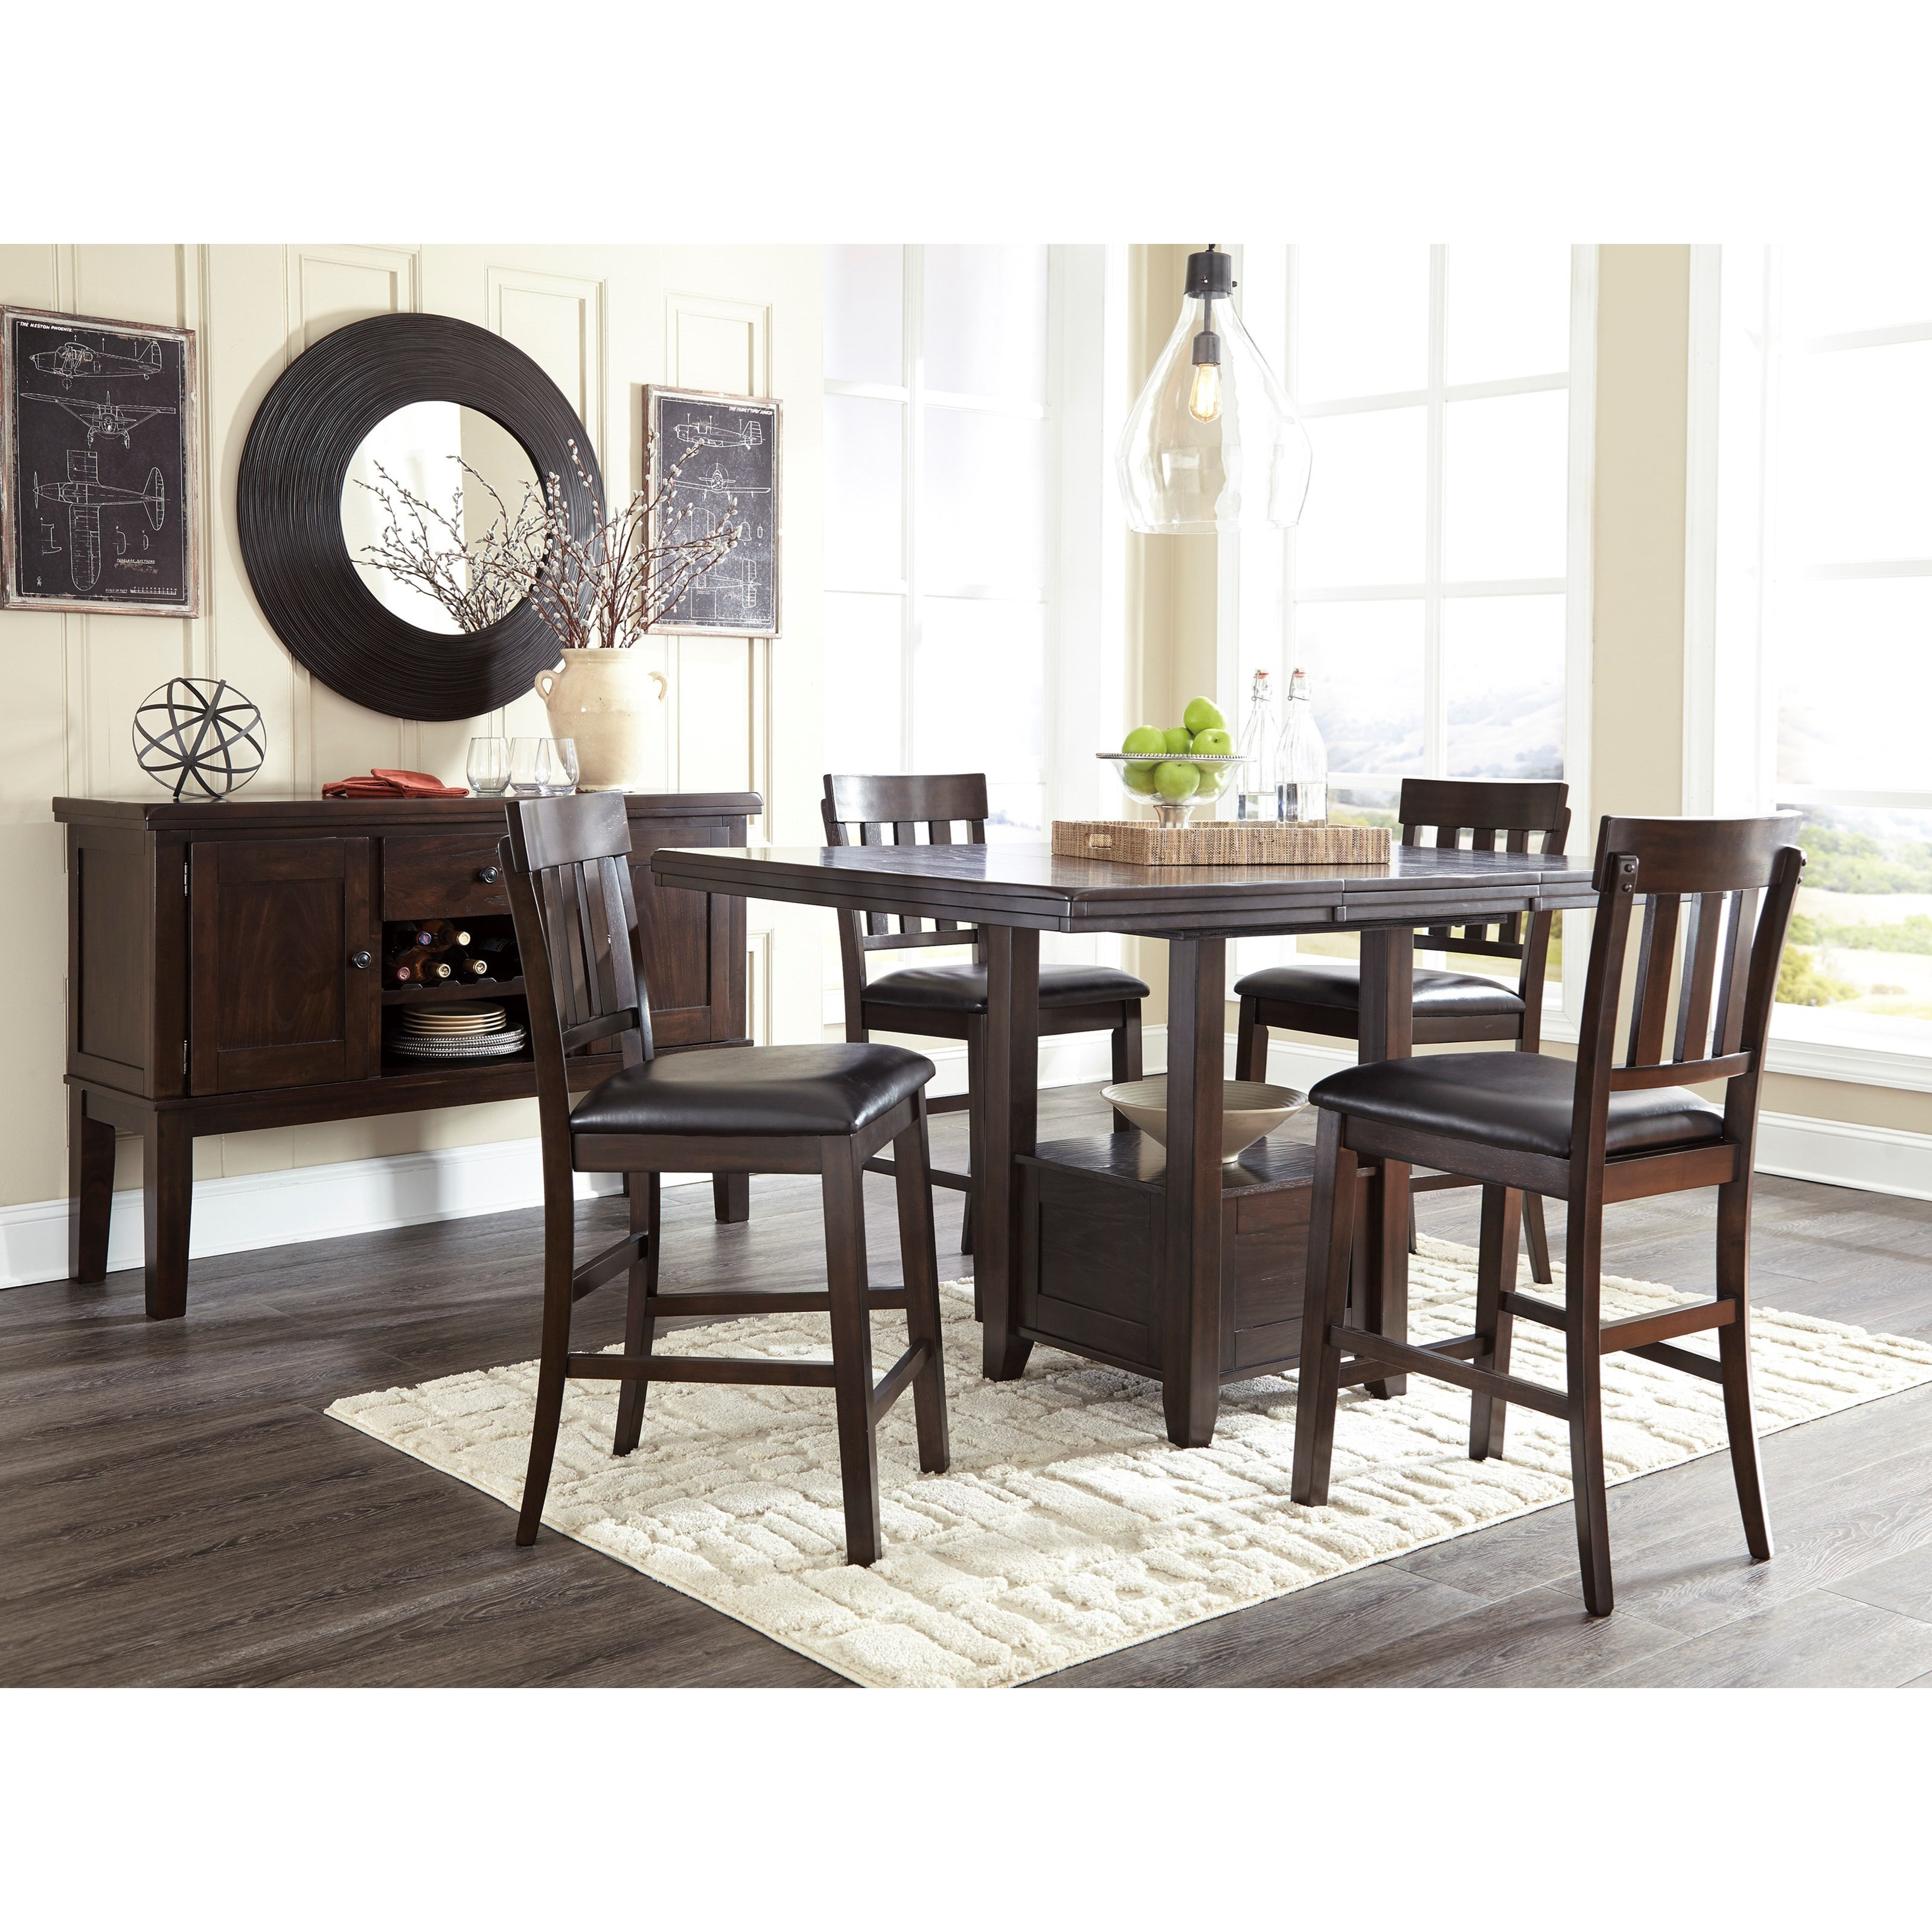 Signature Design By Ashley Haddigan 5-Piece Dining Room